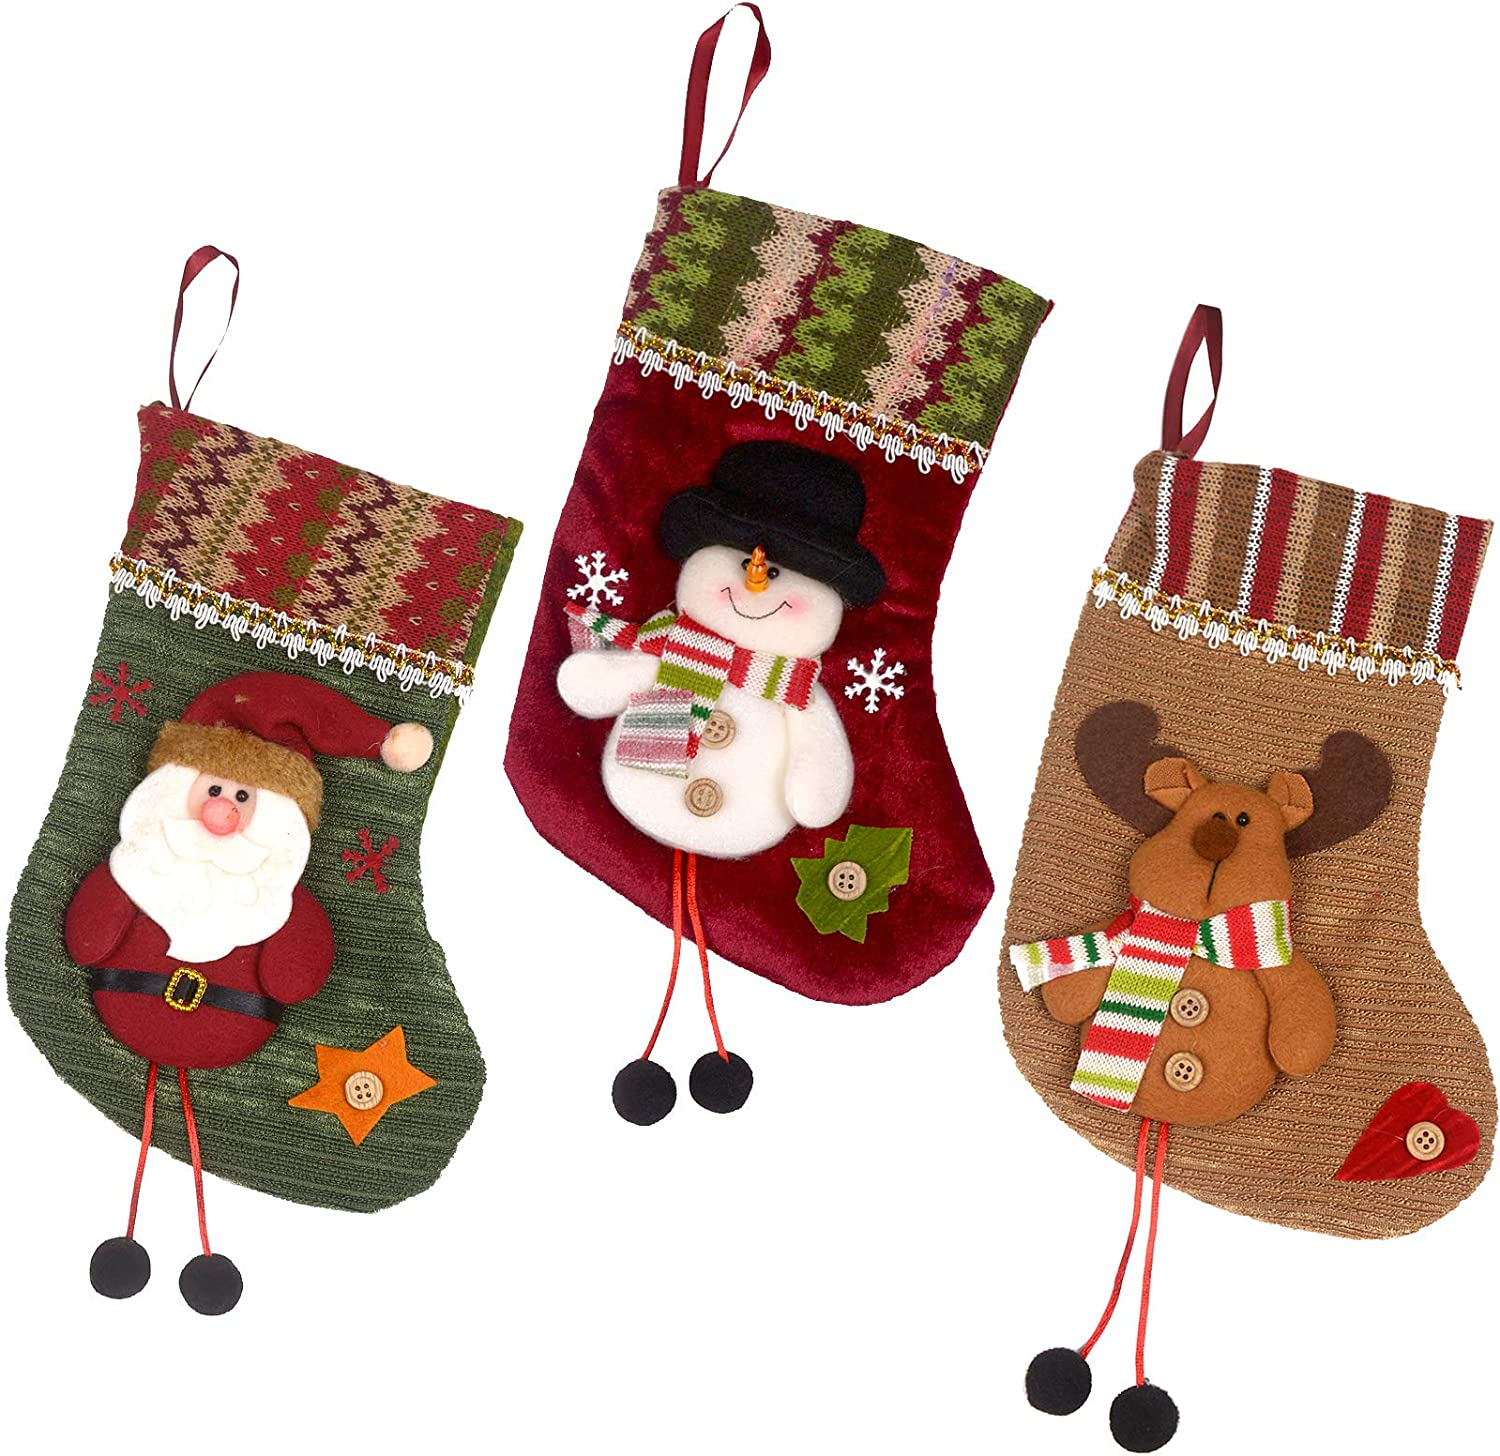 Gardening Will Set Of 3 Styles 10 Christmas Tree Hanging Sock Santa Claus Snowman Stocking Xmas Decoration Gift Garden Outdoor